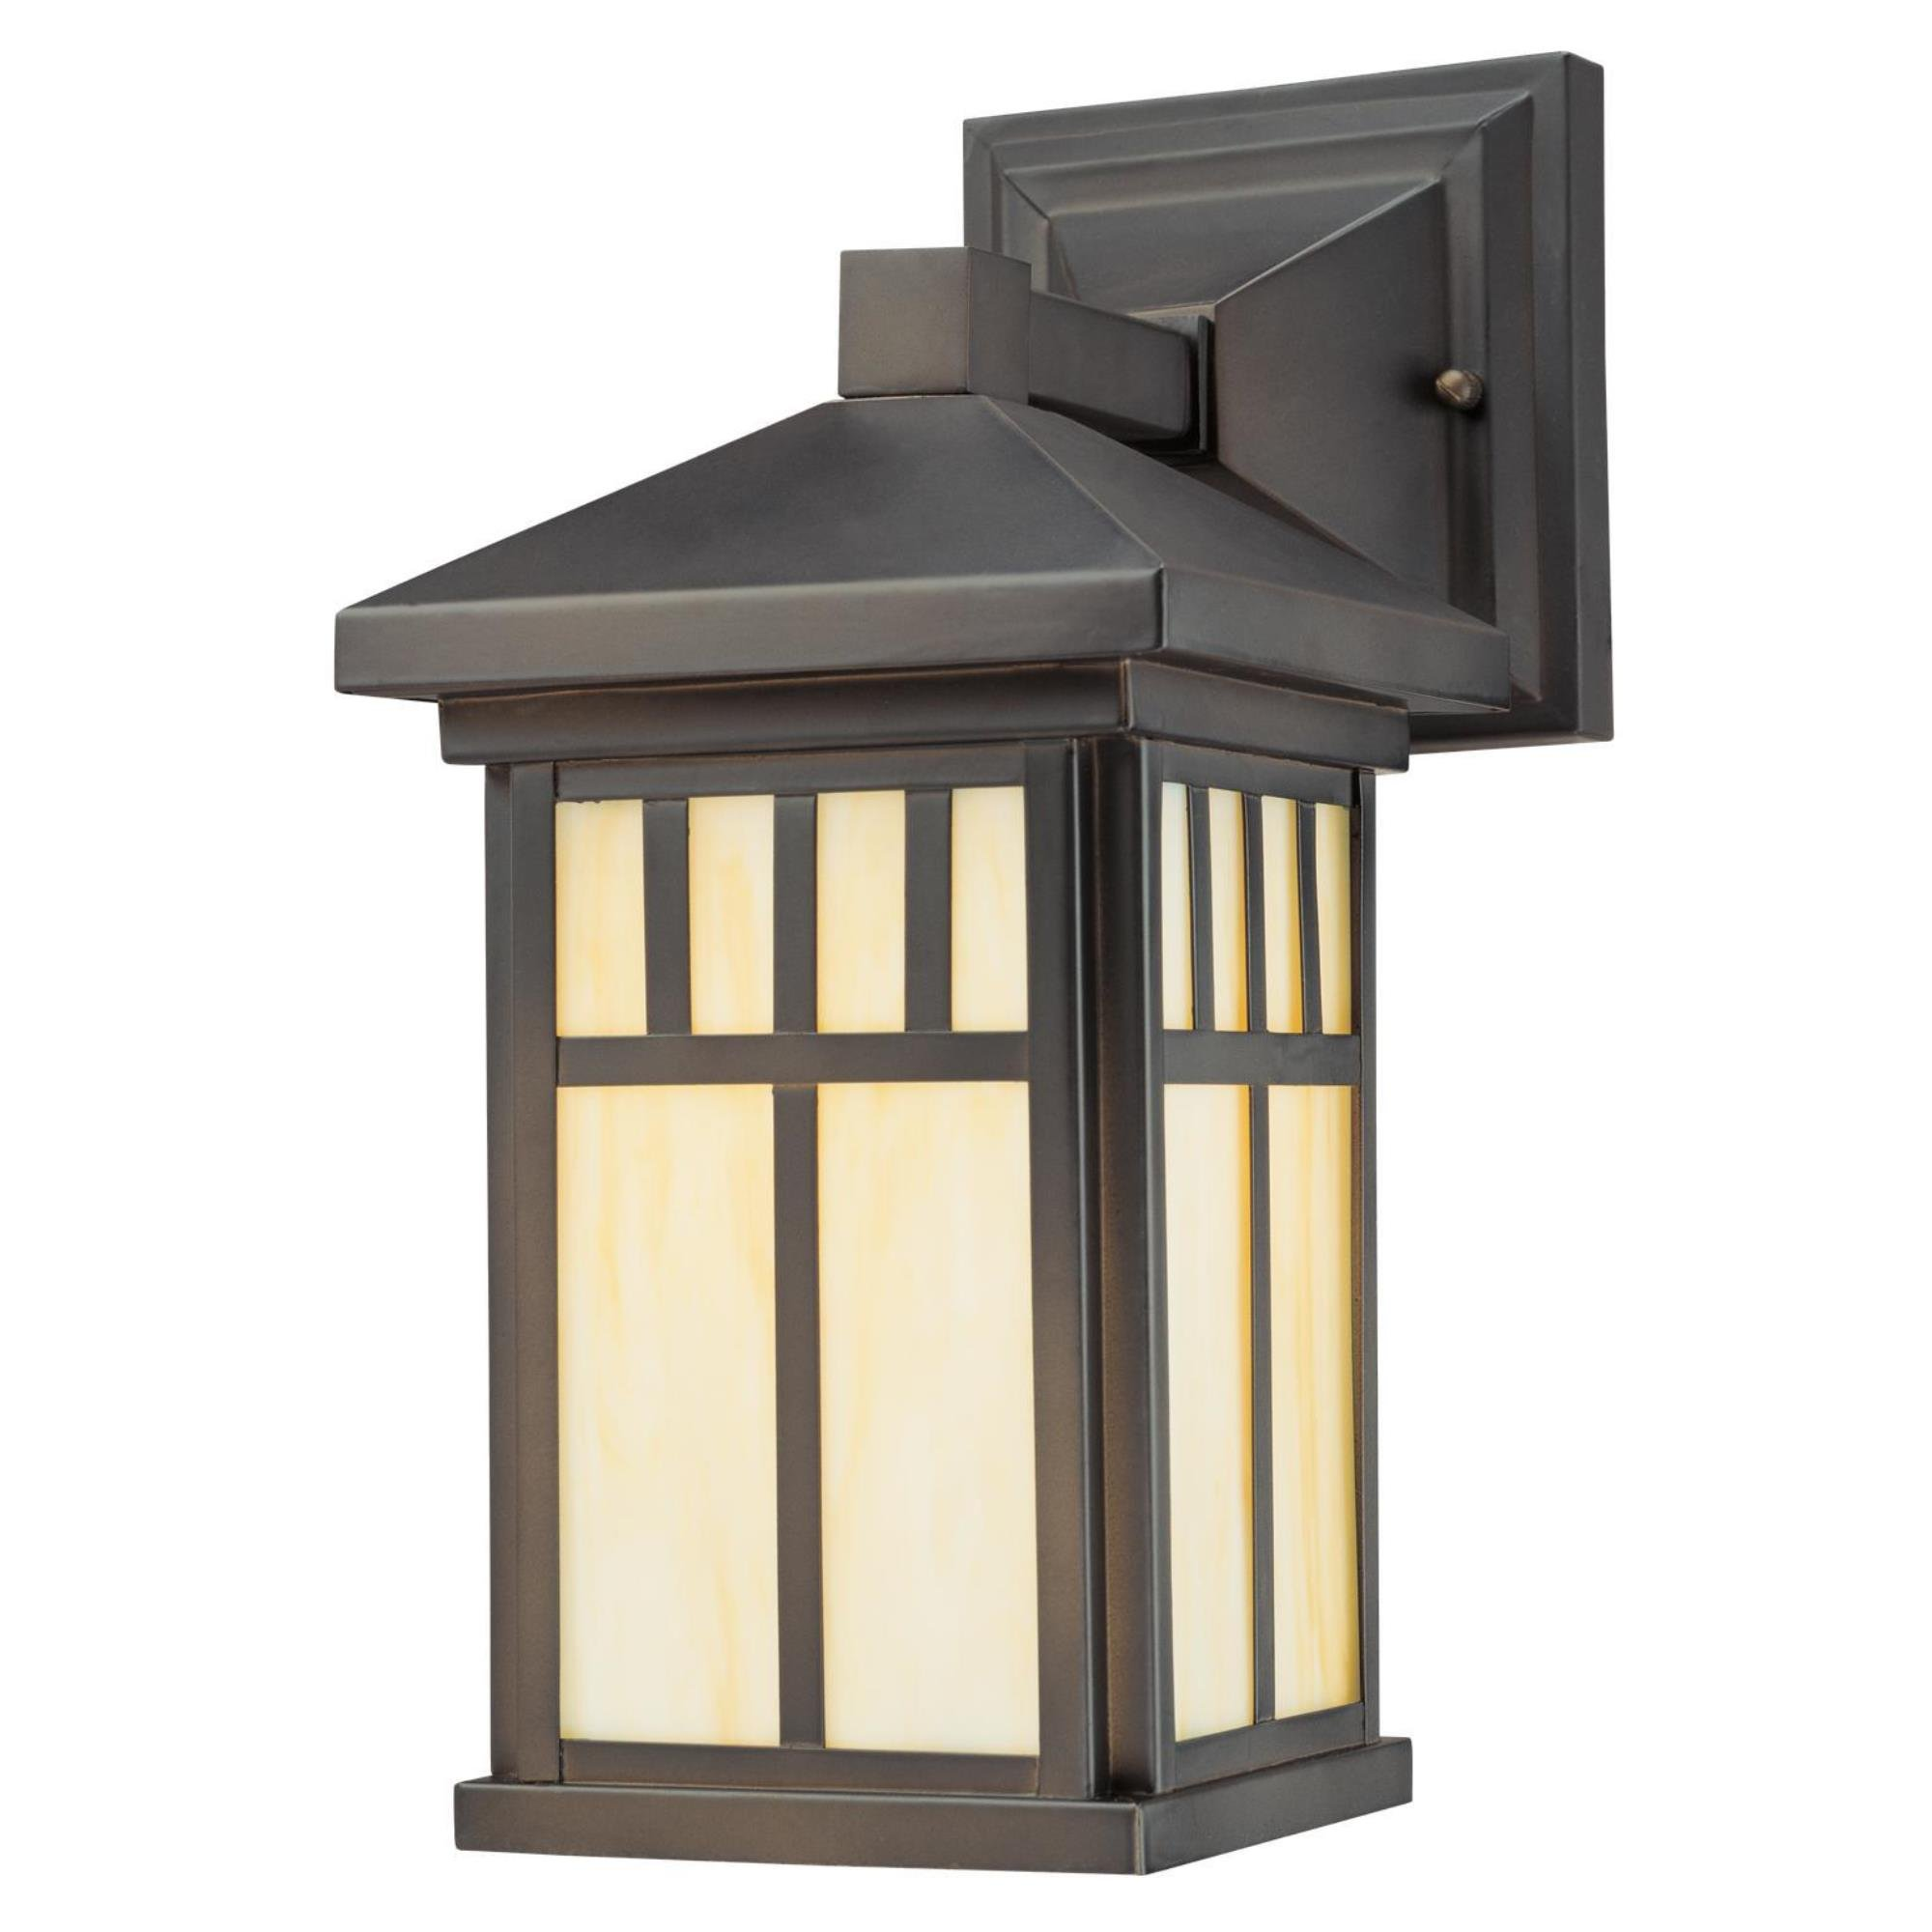 Westinghouse Lighting 6732800 Burnham One-Light Exterior Wall Lantern on Steel with Honey Art Glass, Oil Rubbed Bronze Finish, 1 Pack, by Westinghouse Lighting